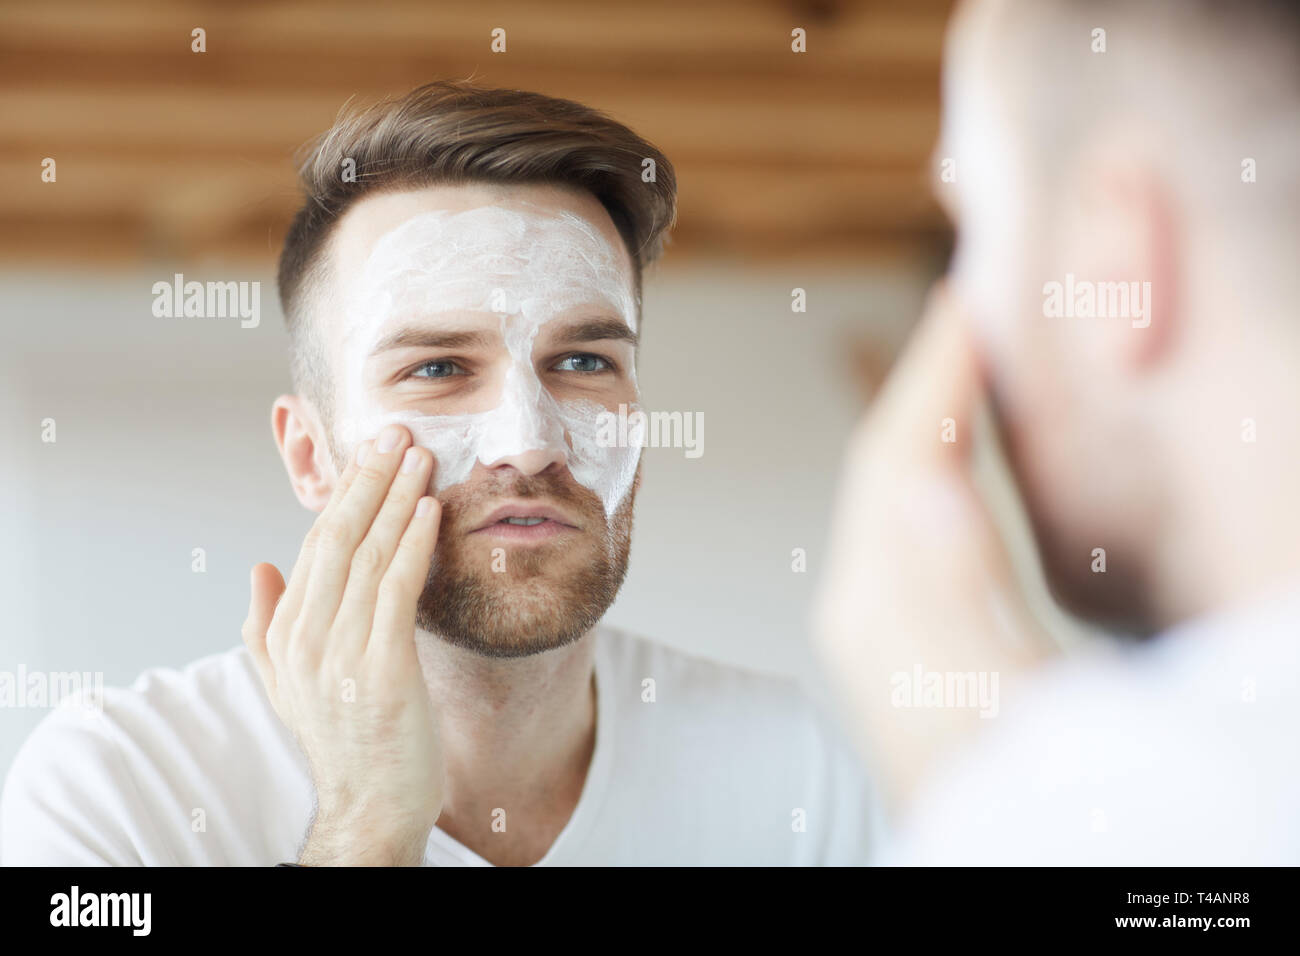 Man using Face Cream - Stock Image